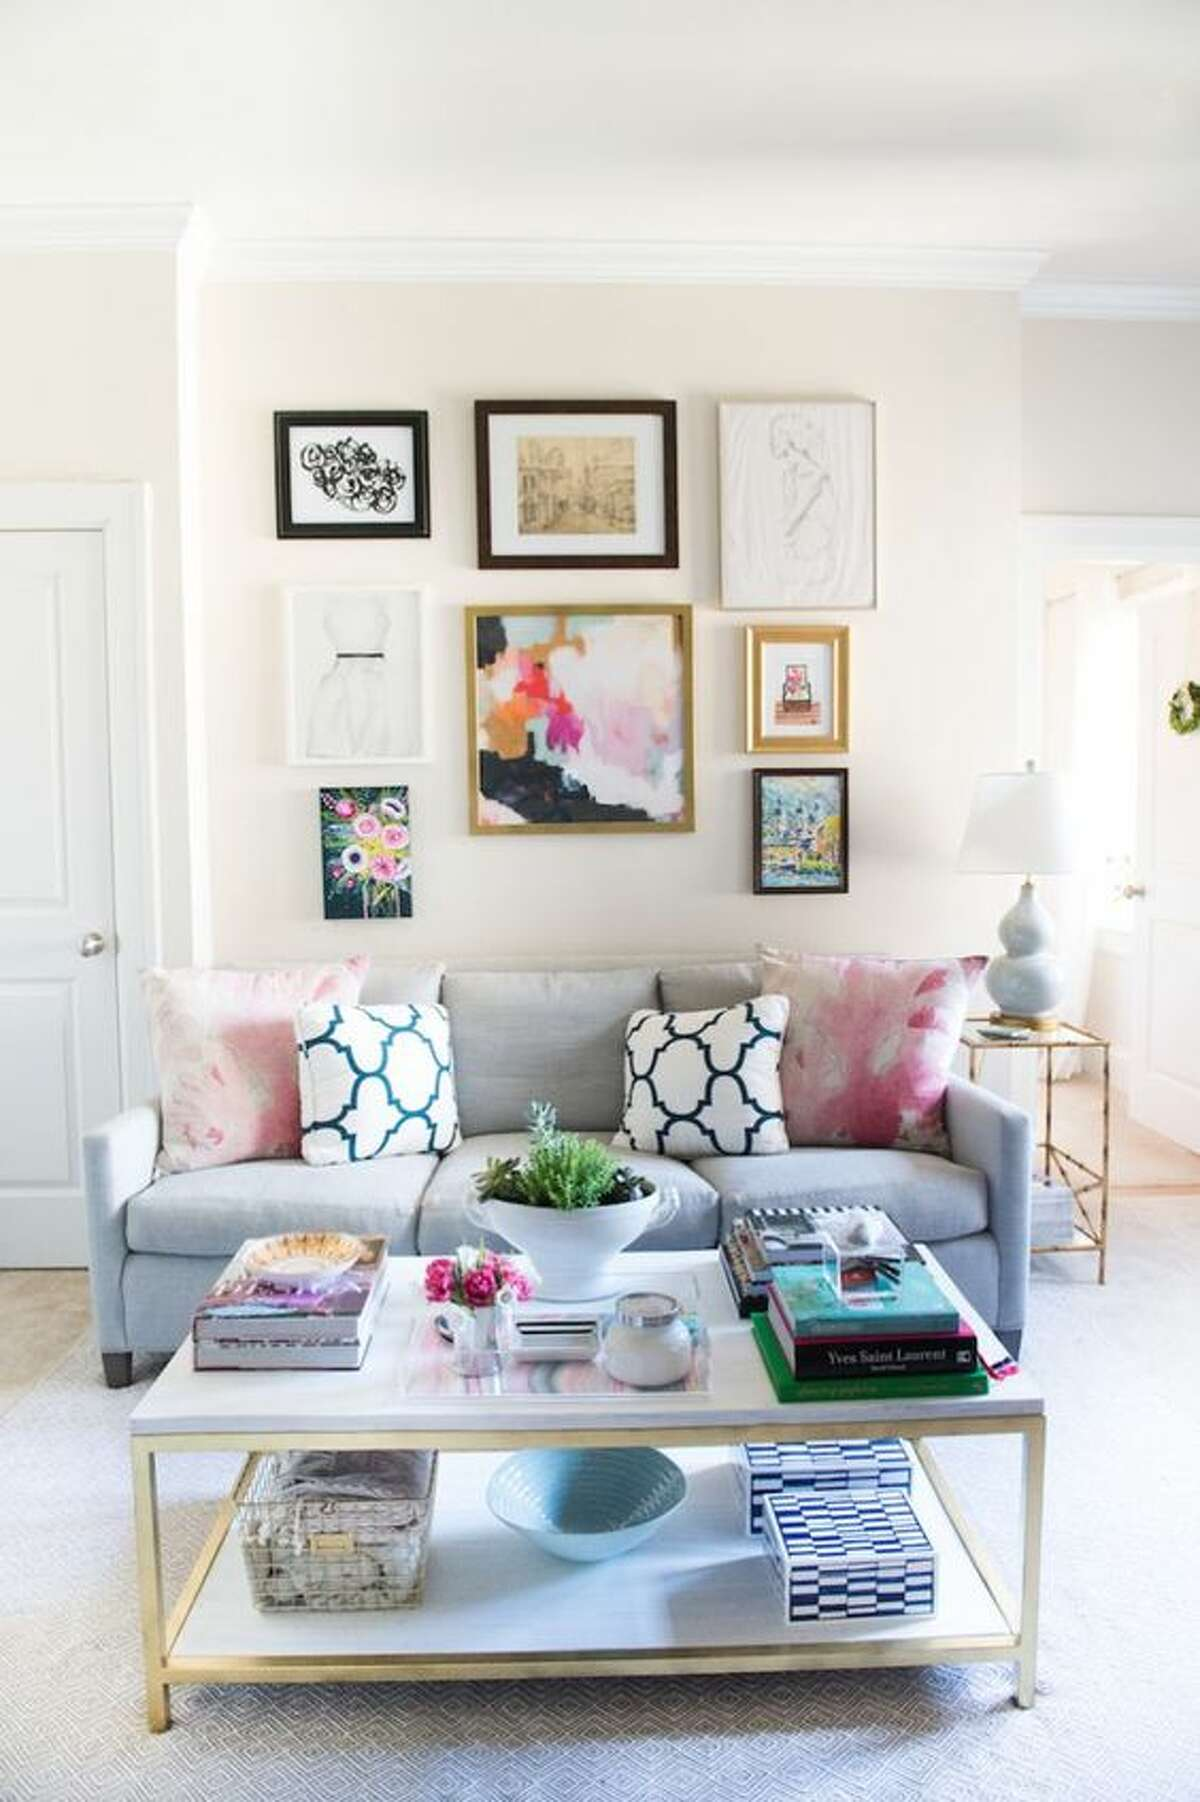 Using pale or brighter colors can create a more open and clean space in nearly any apartment. Photo: Pinterest